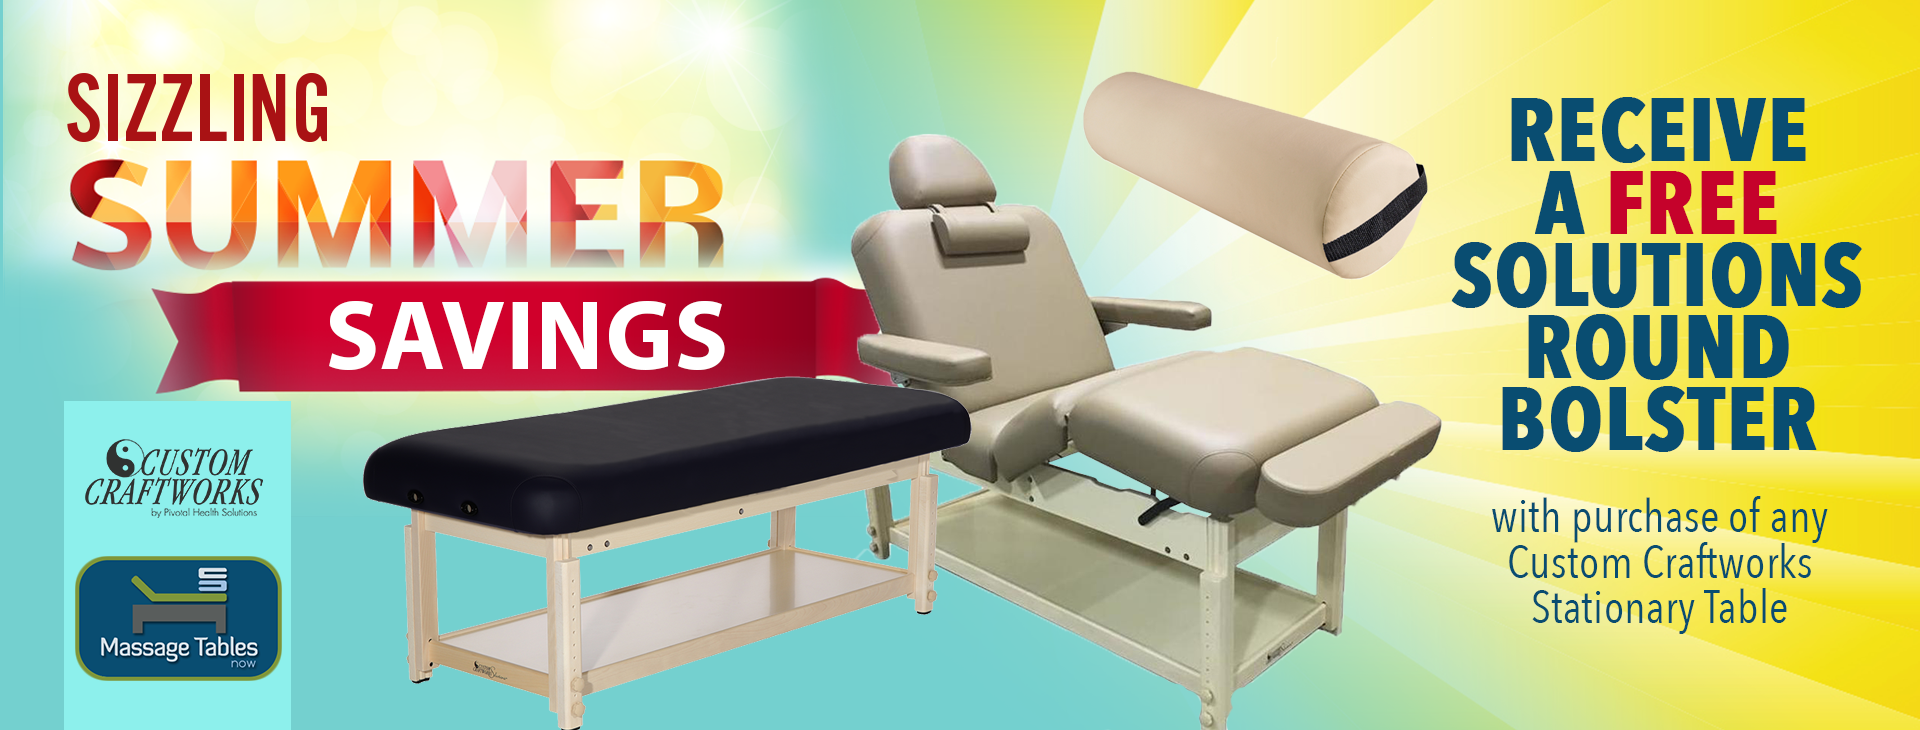 Dog Days of Summer Massage Tables Sale Image